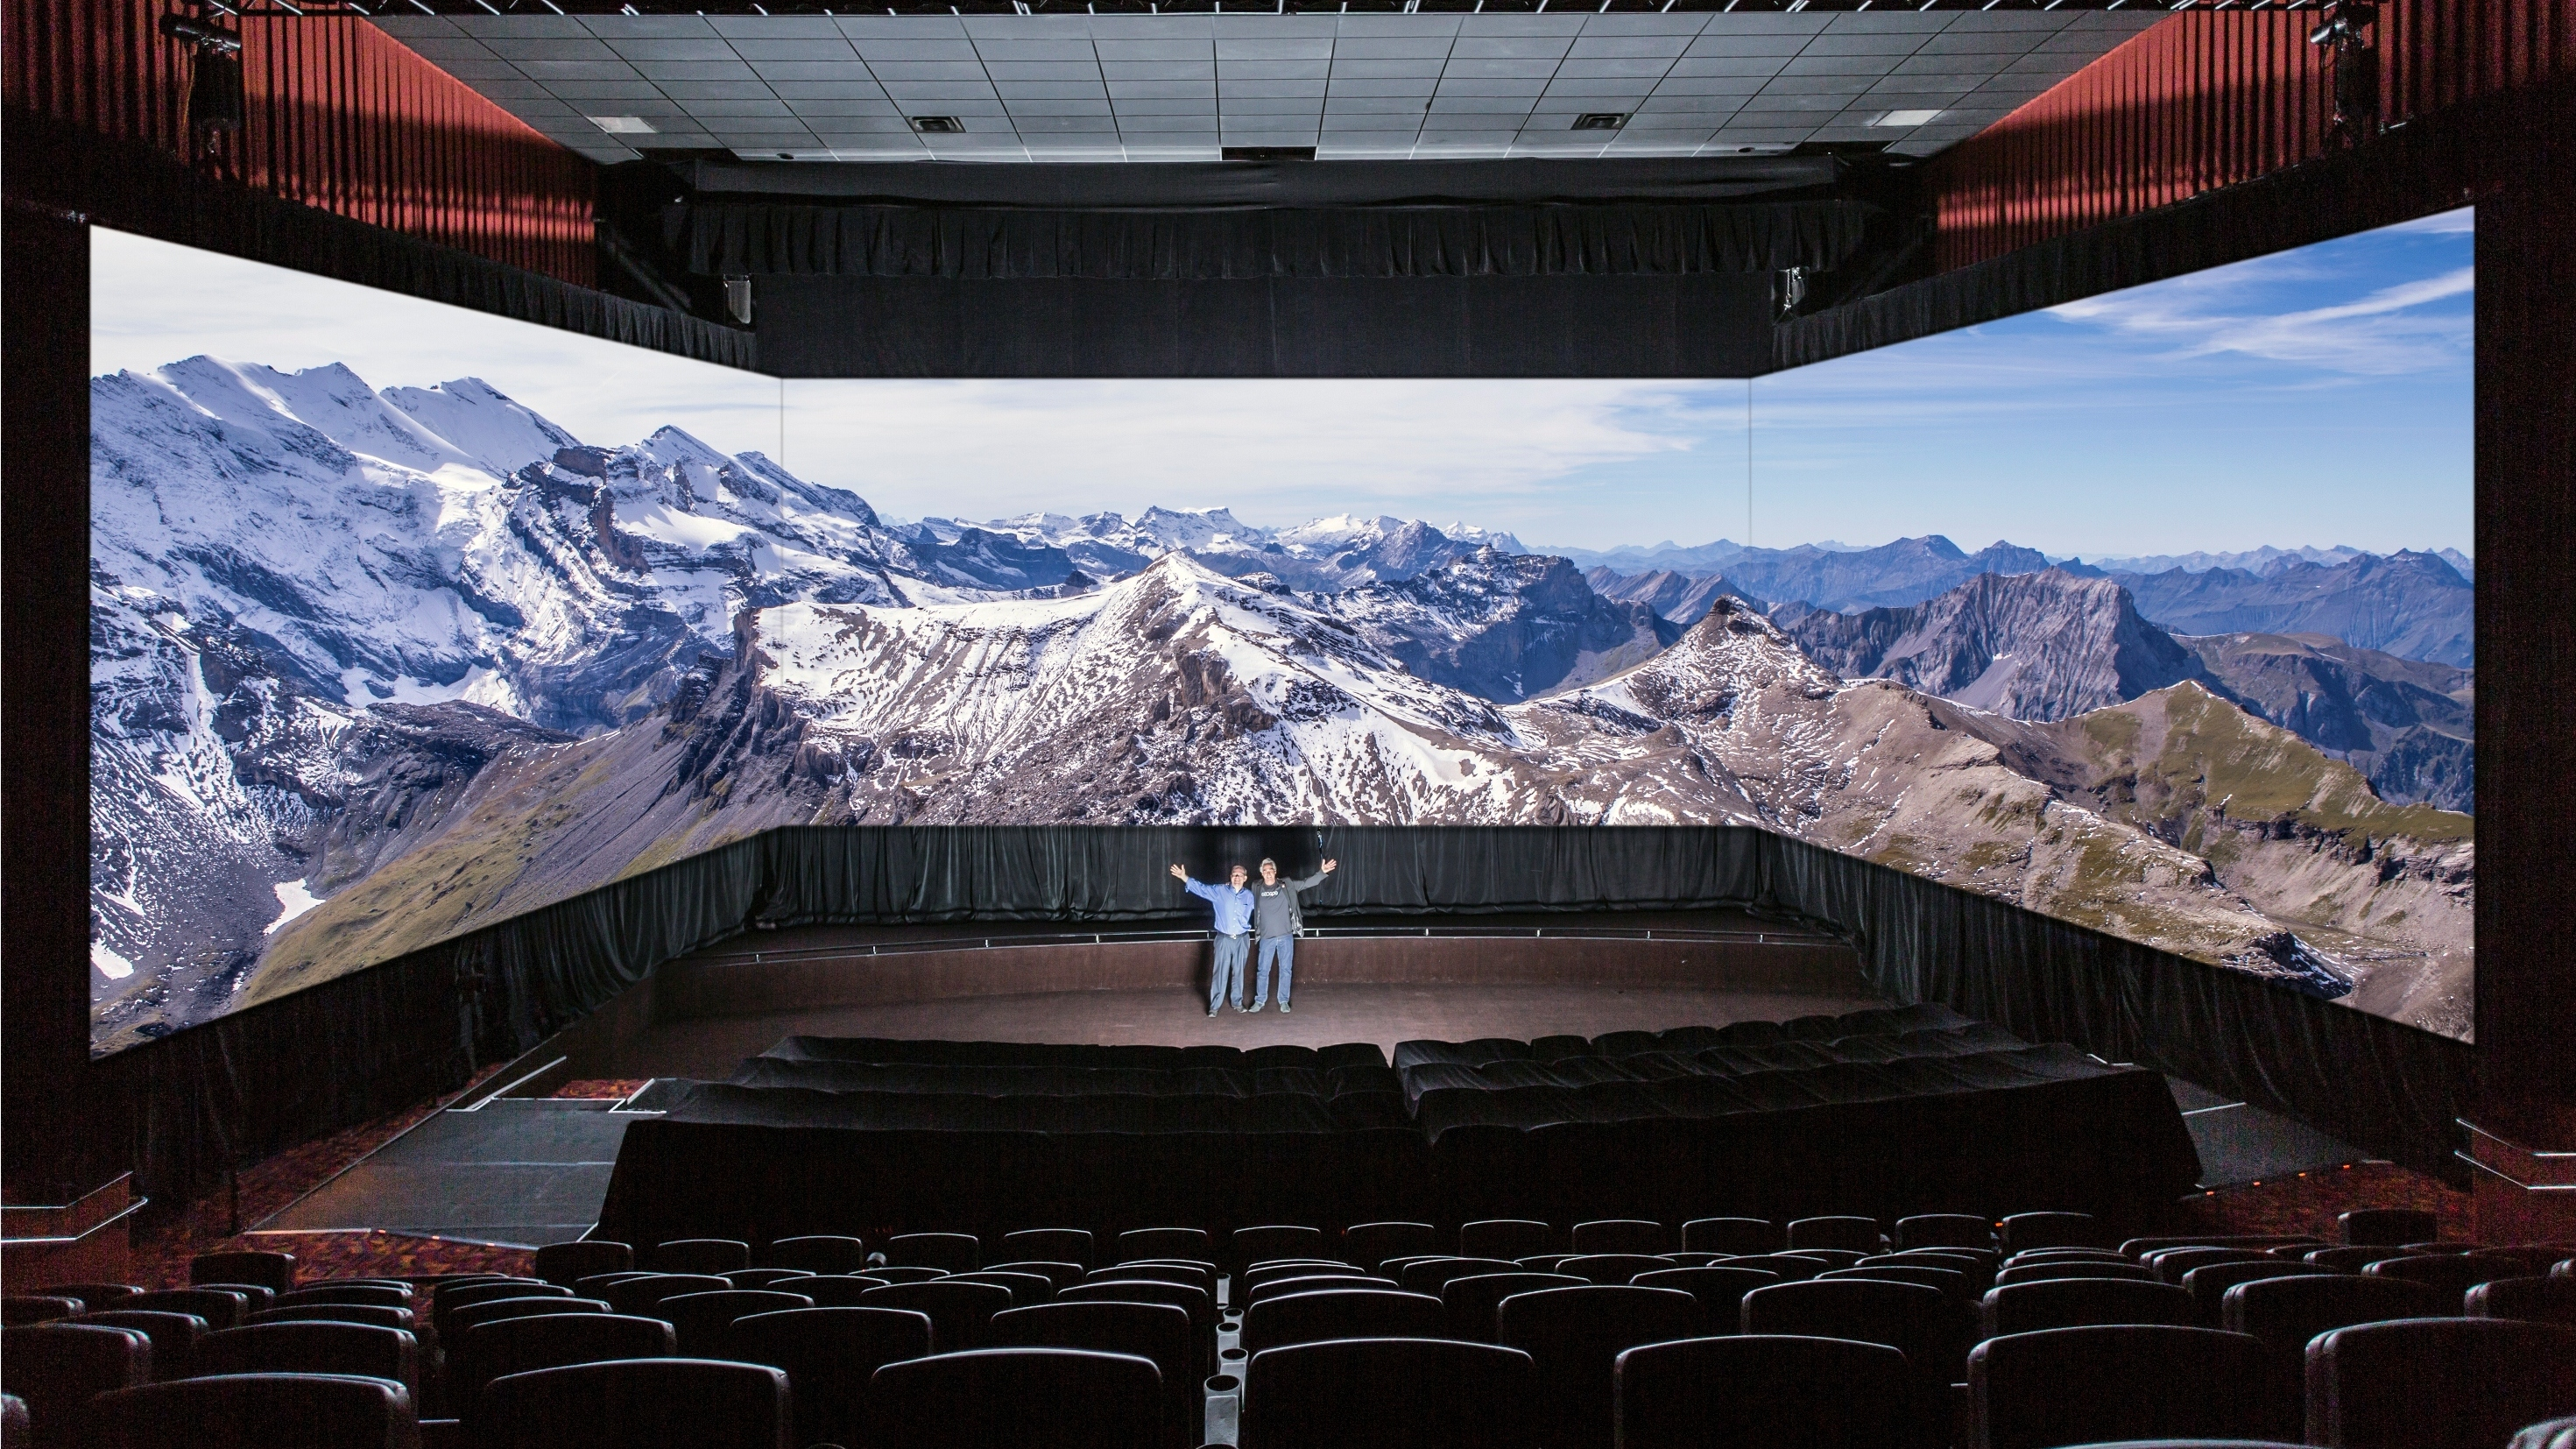 Movie Theaters Hope To Add Another Dimension To Their Profits